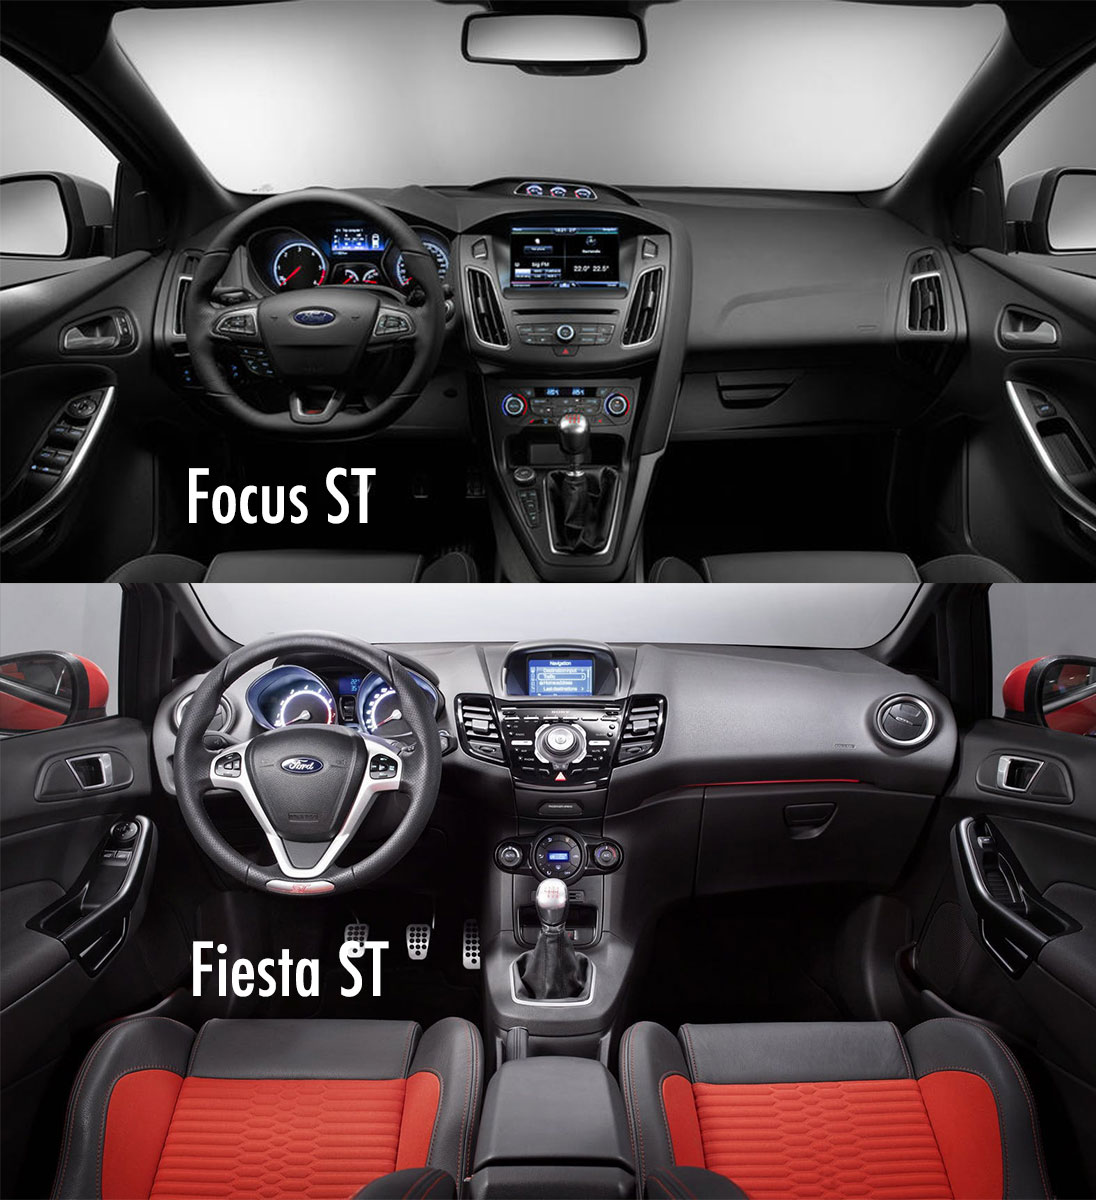 Fiesta St Vs Focus St Which Hot Hatch Is Actually Better